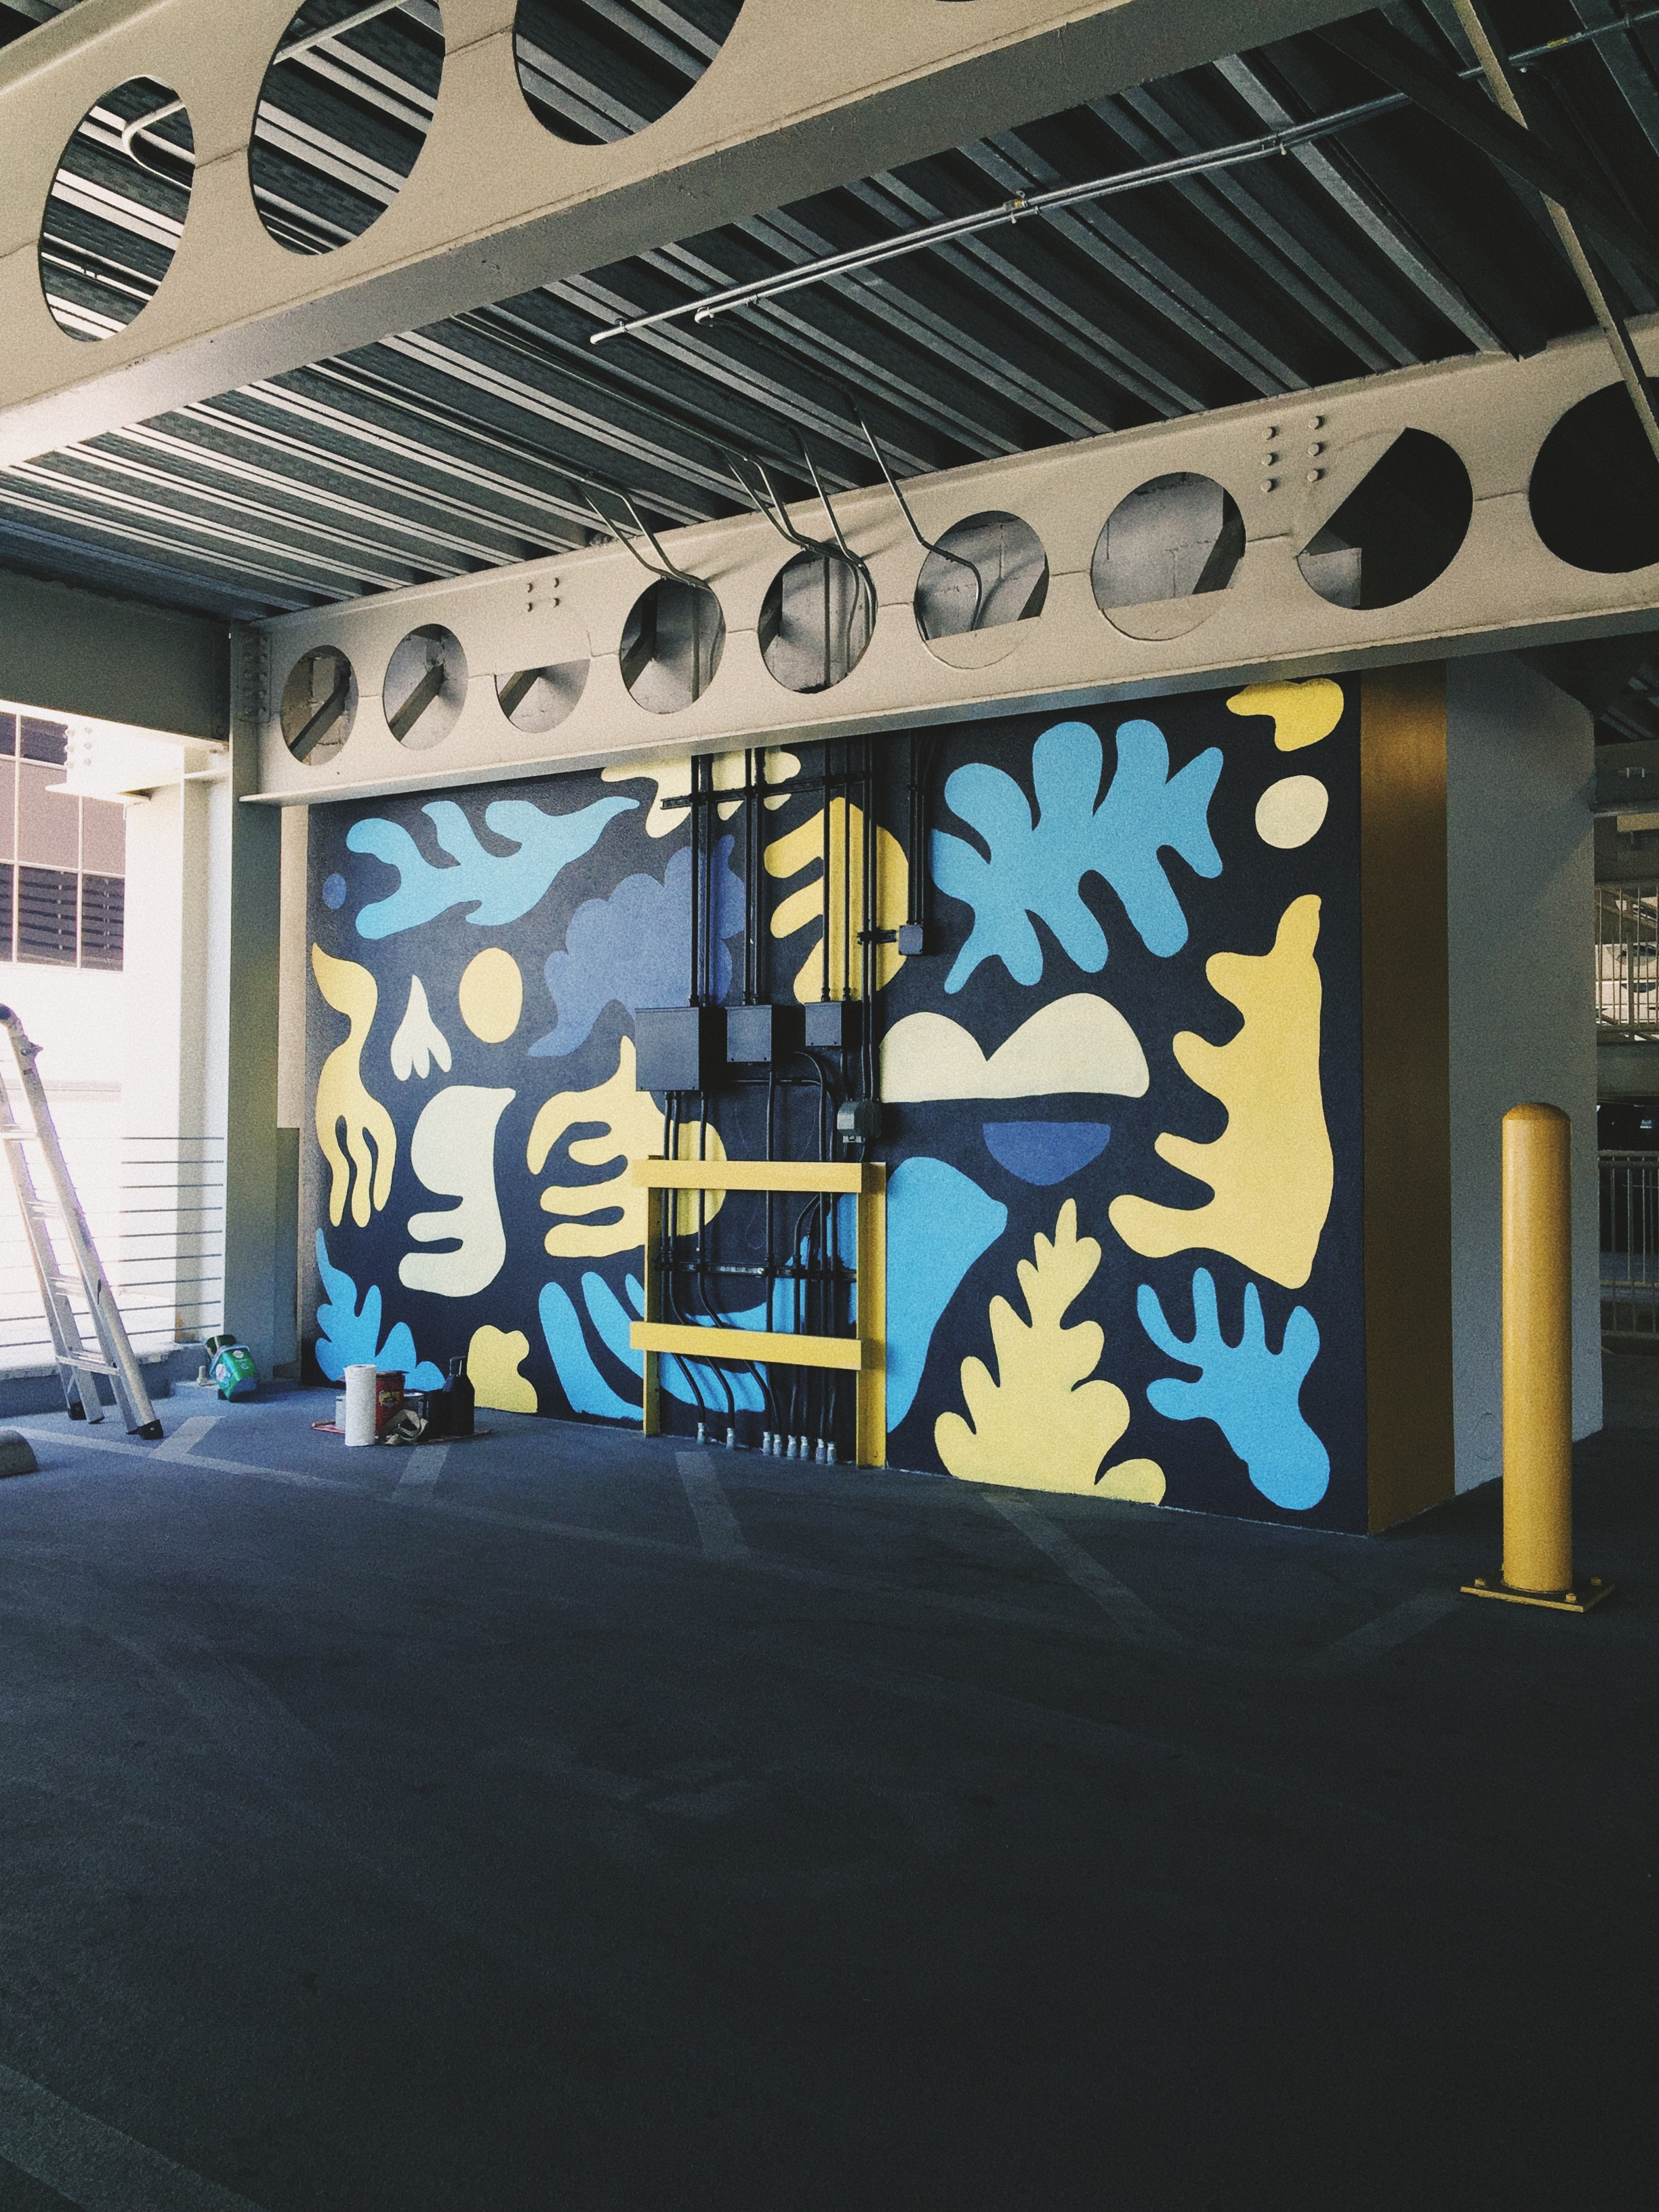 Parking Garage Mural at Westbend FW by Kyle Steed